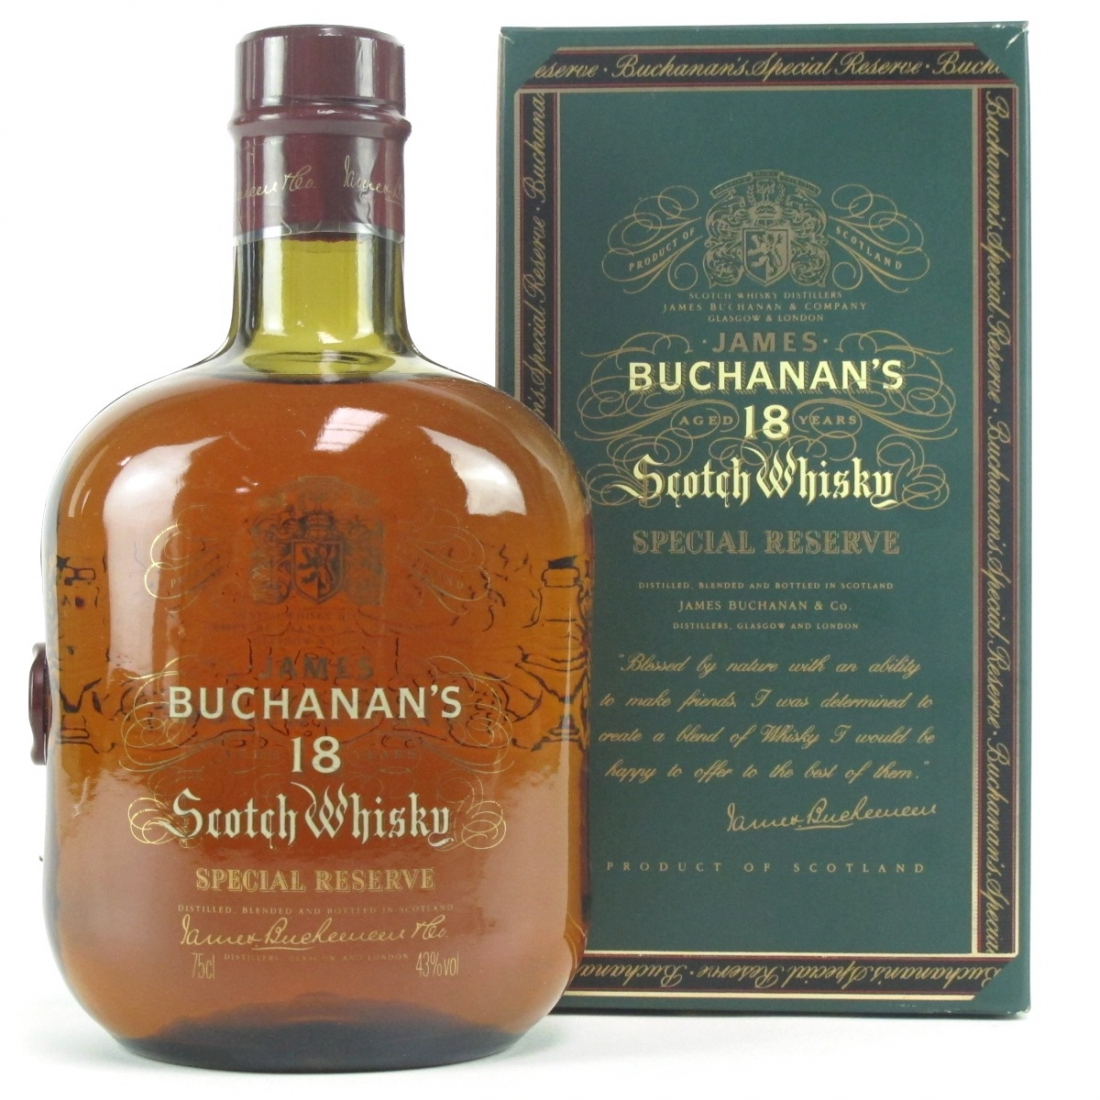 Buchanan's 18 Year Old Special Reserve 75cl